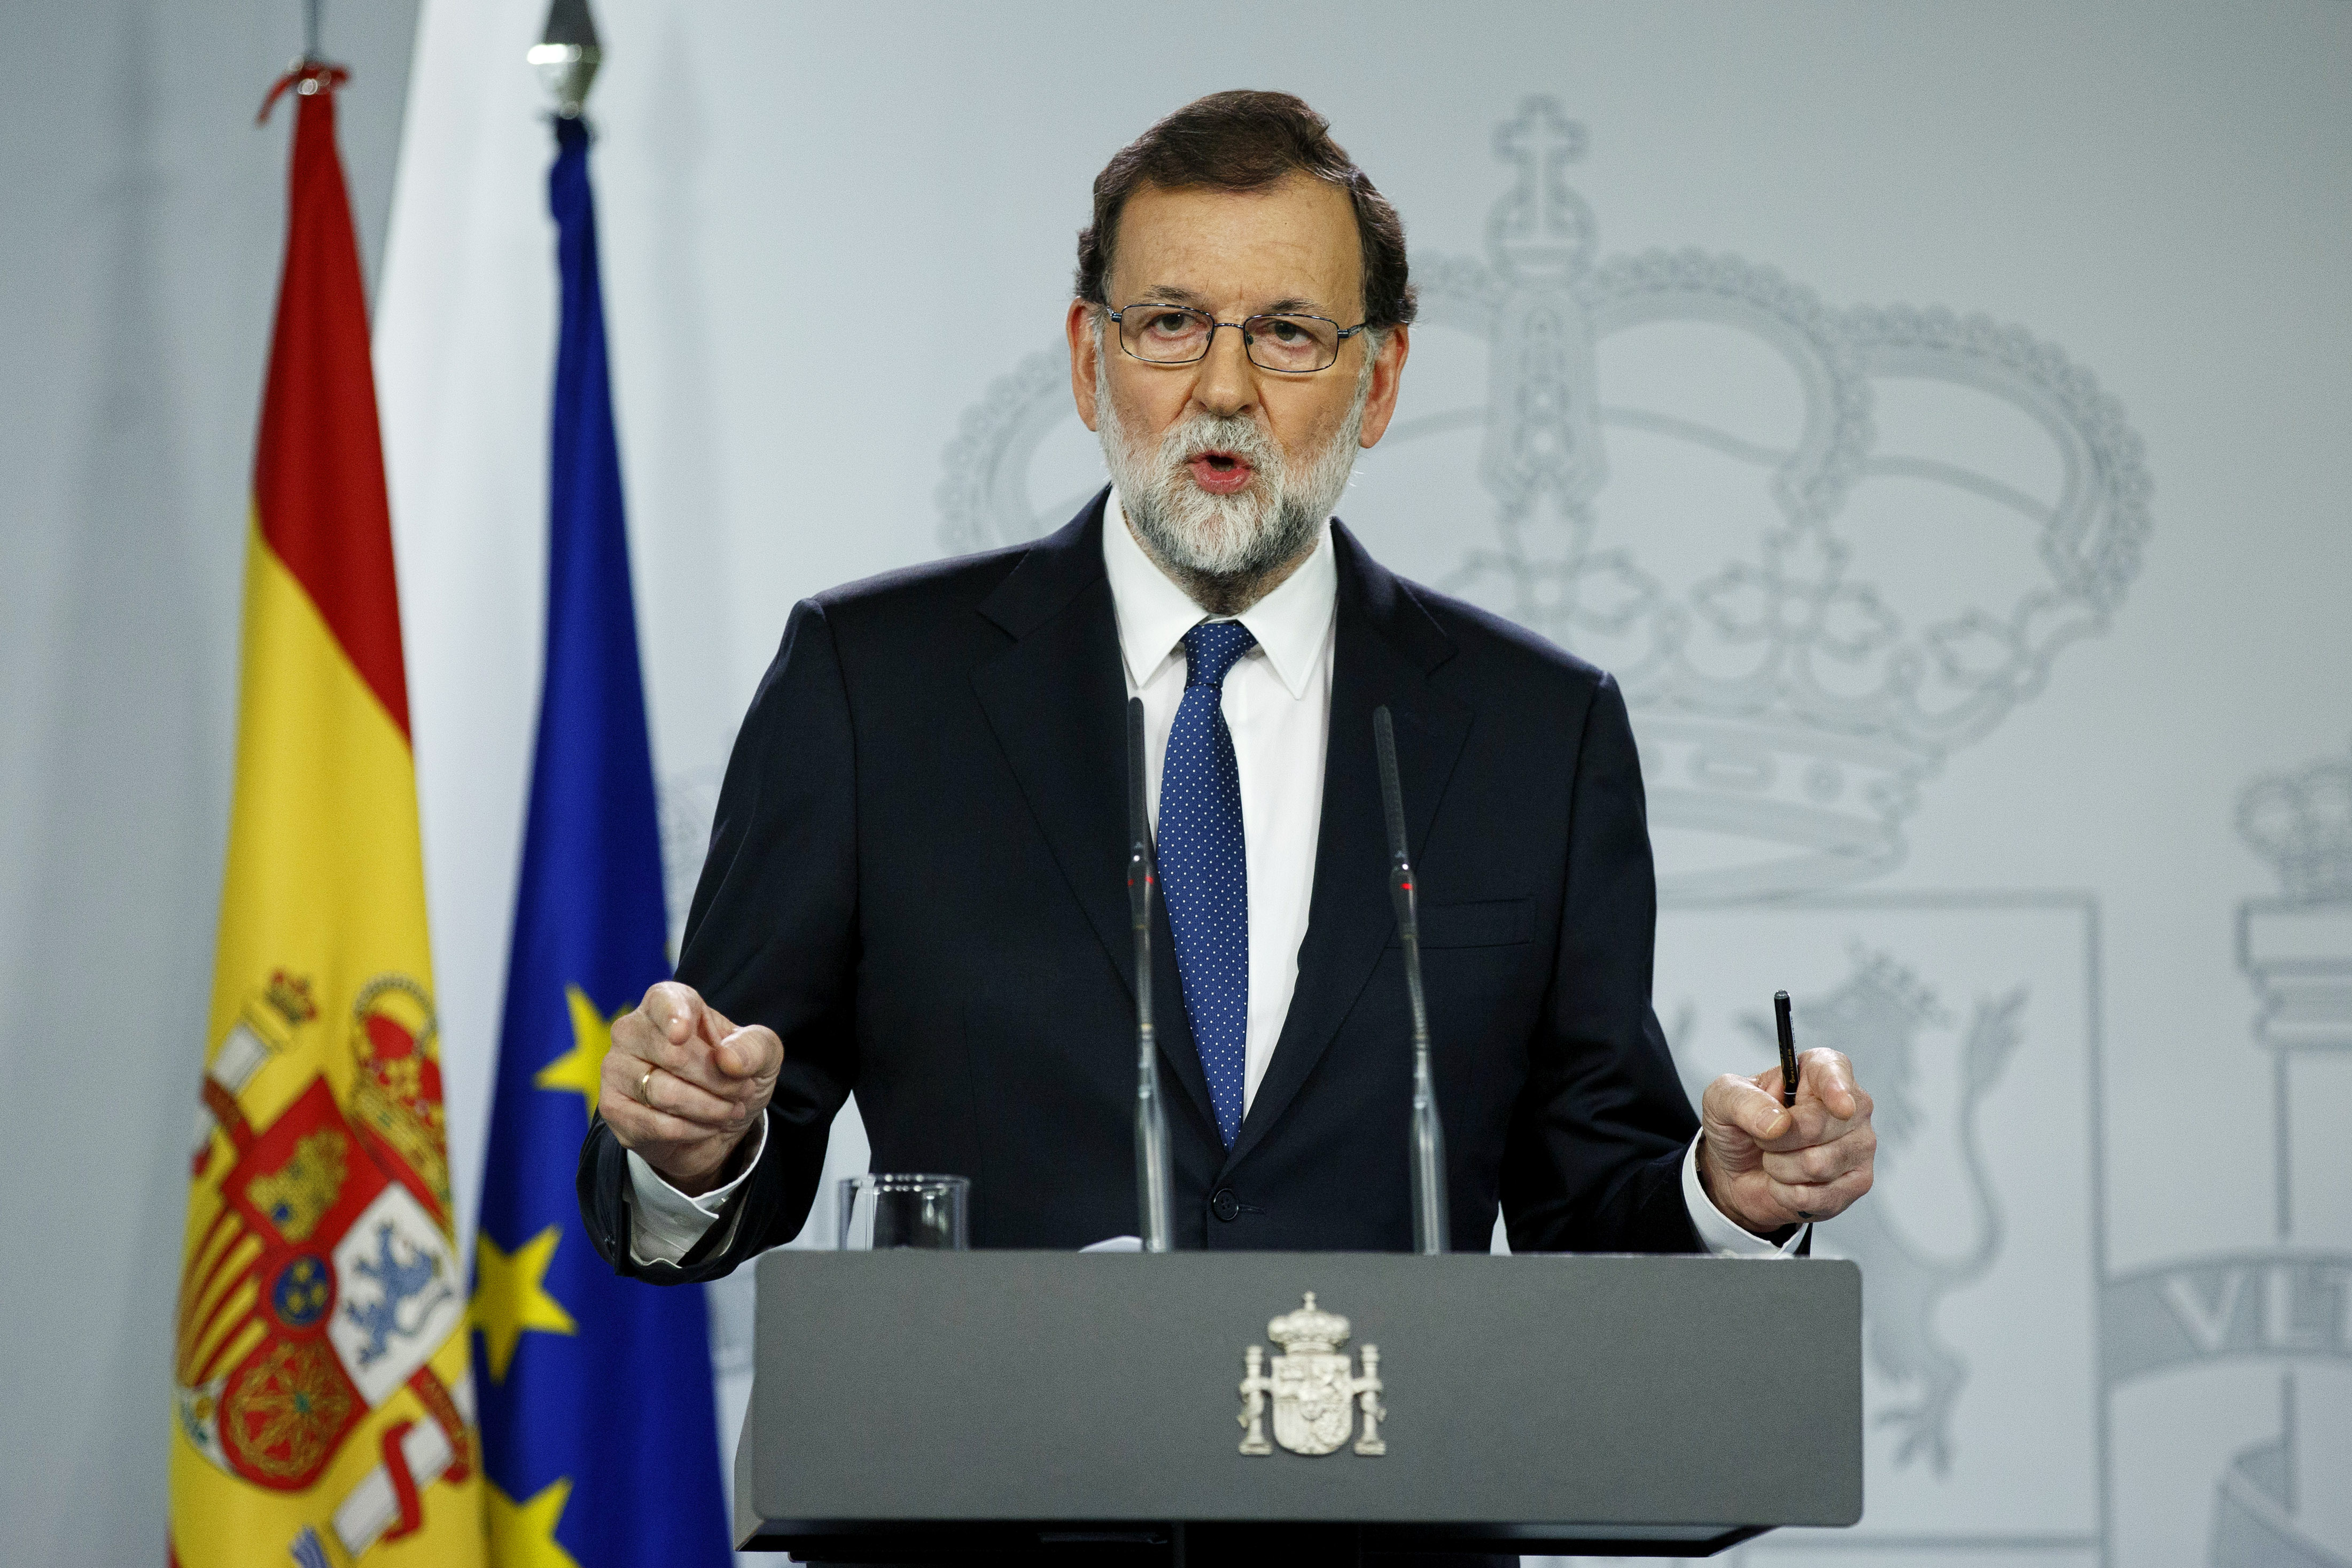 MADRID, SPAIN - OCTOBER 21:  Spanish Prime Minister Mariano Rajoy speaks during a press conference after an extraordinary cabinet meeting to discuss interventions in Catalonia.